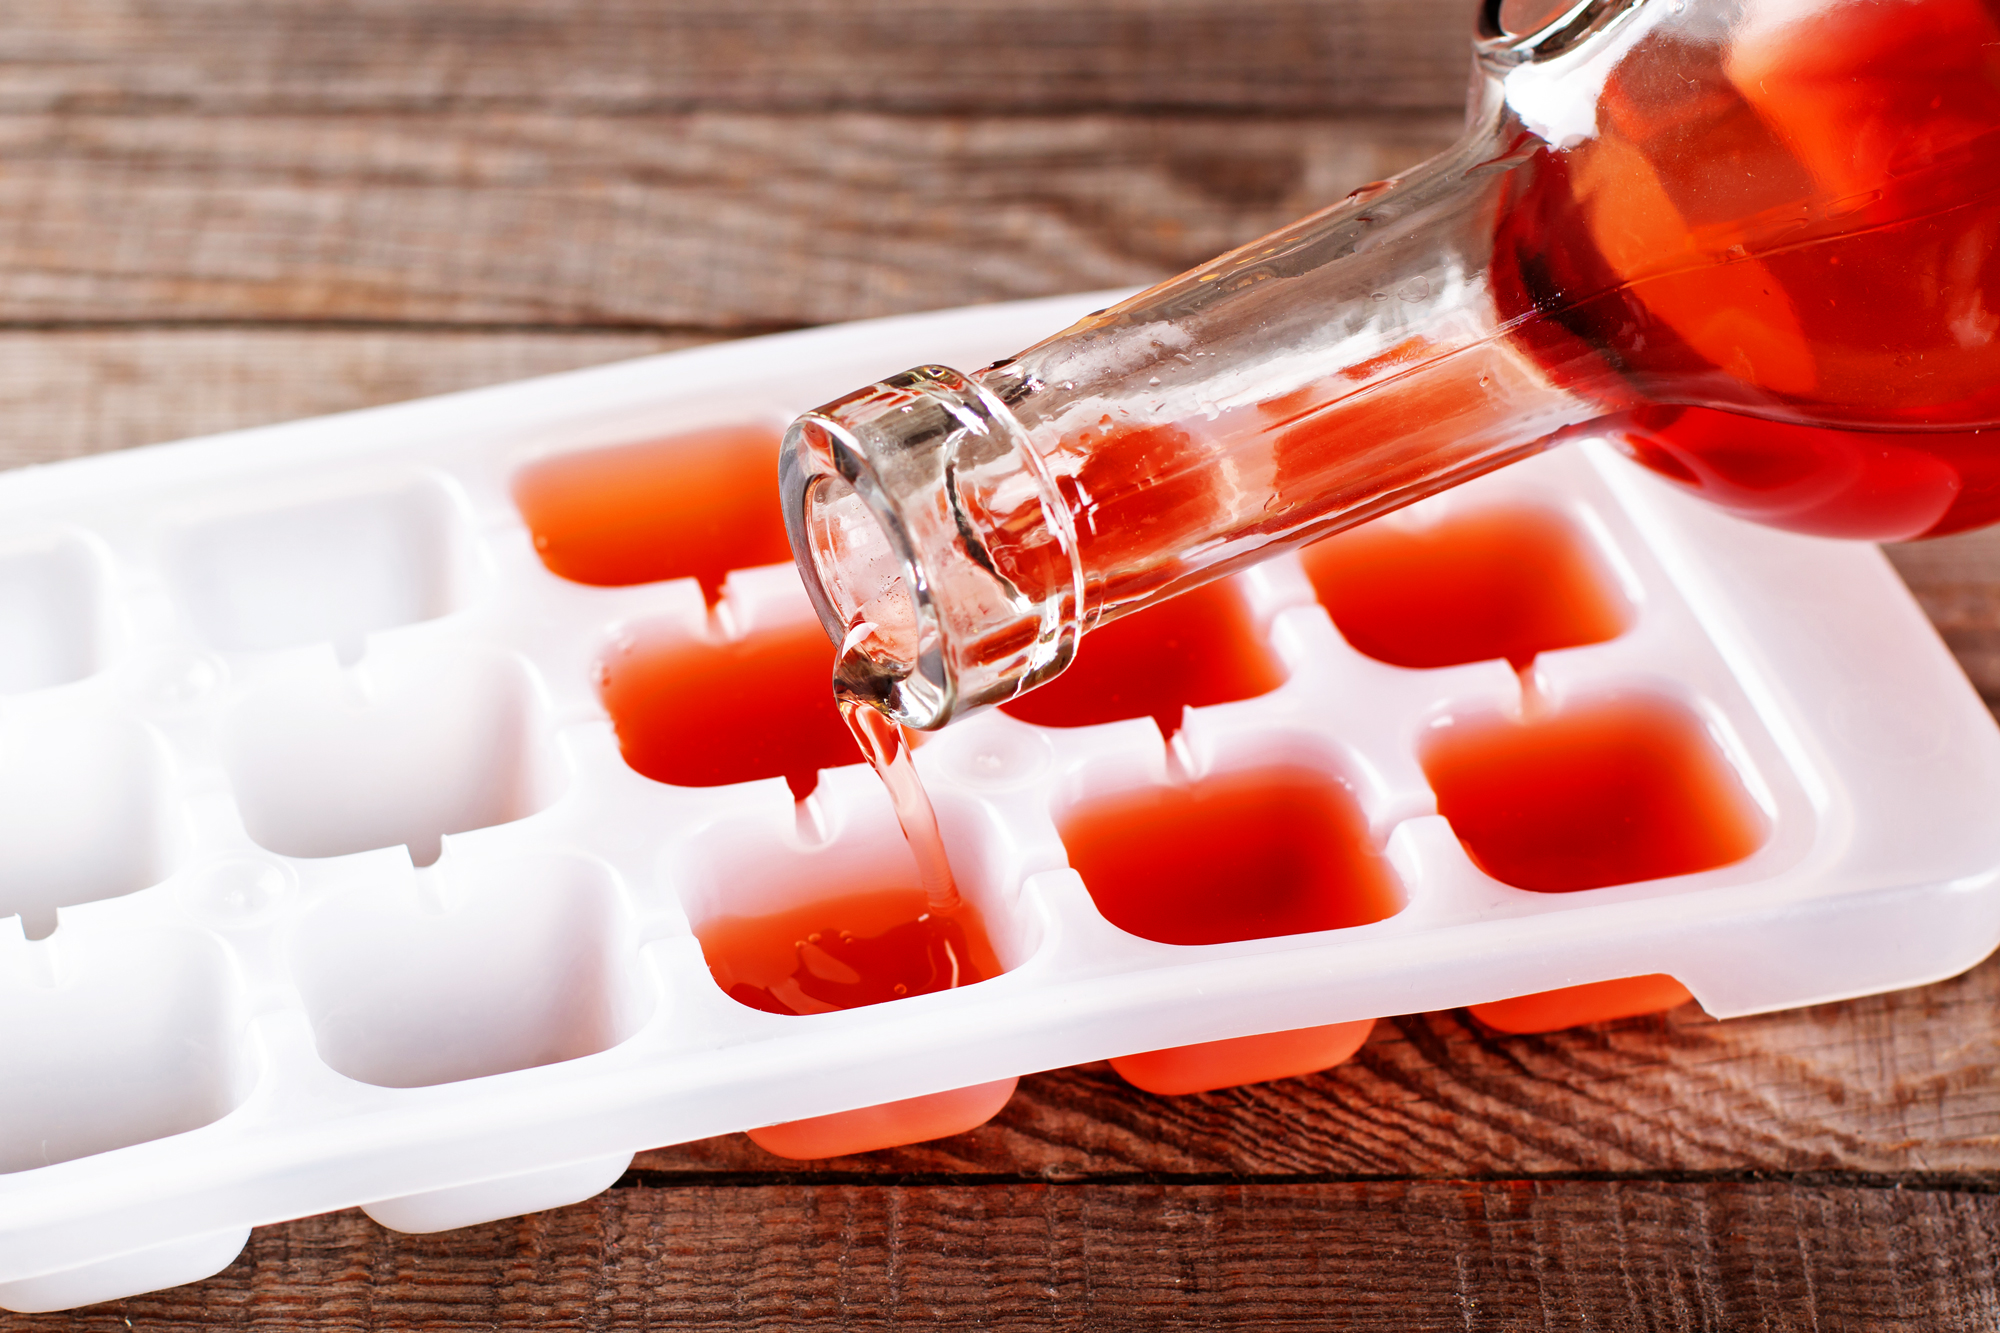 Pouring wine into ice cube tray